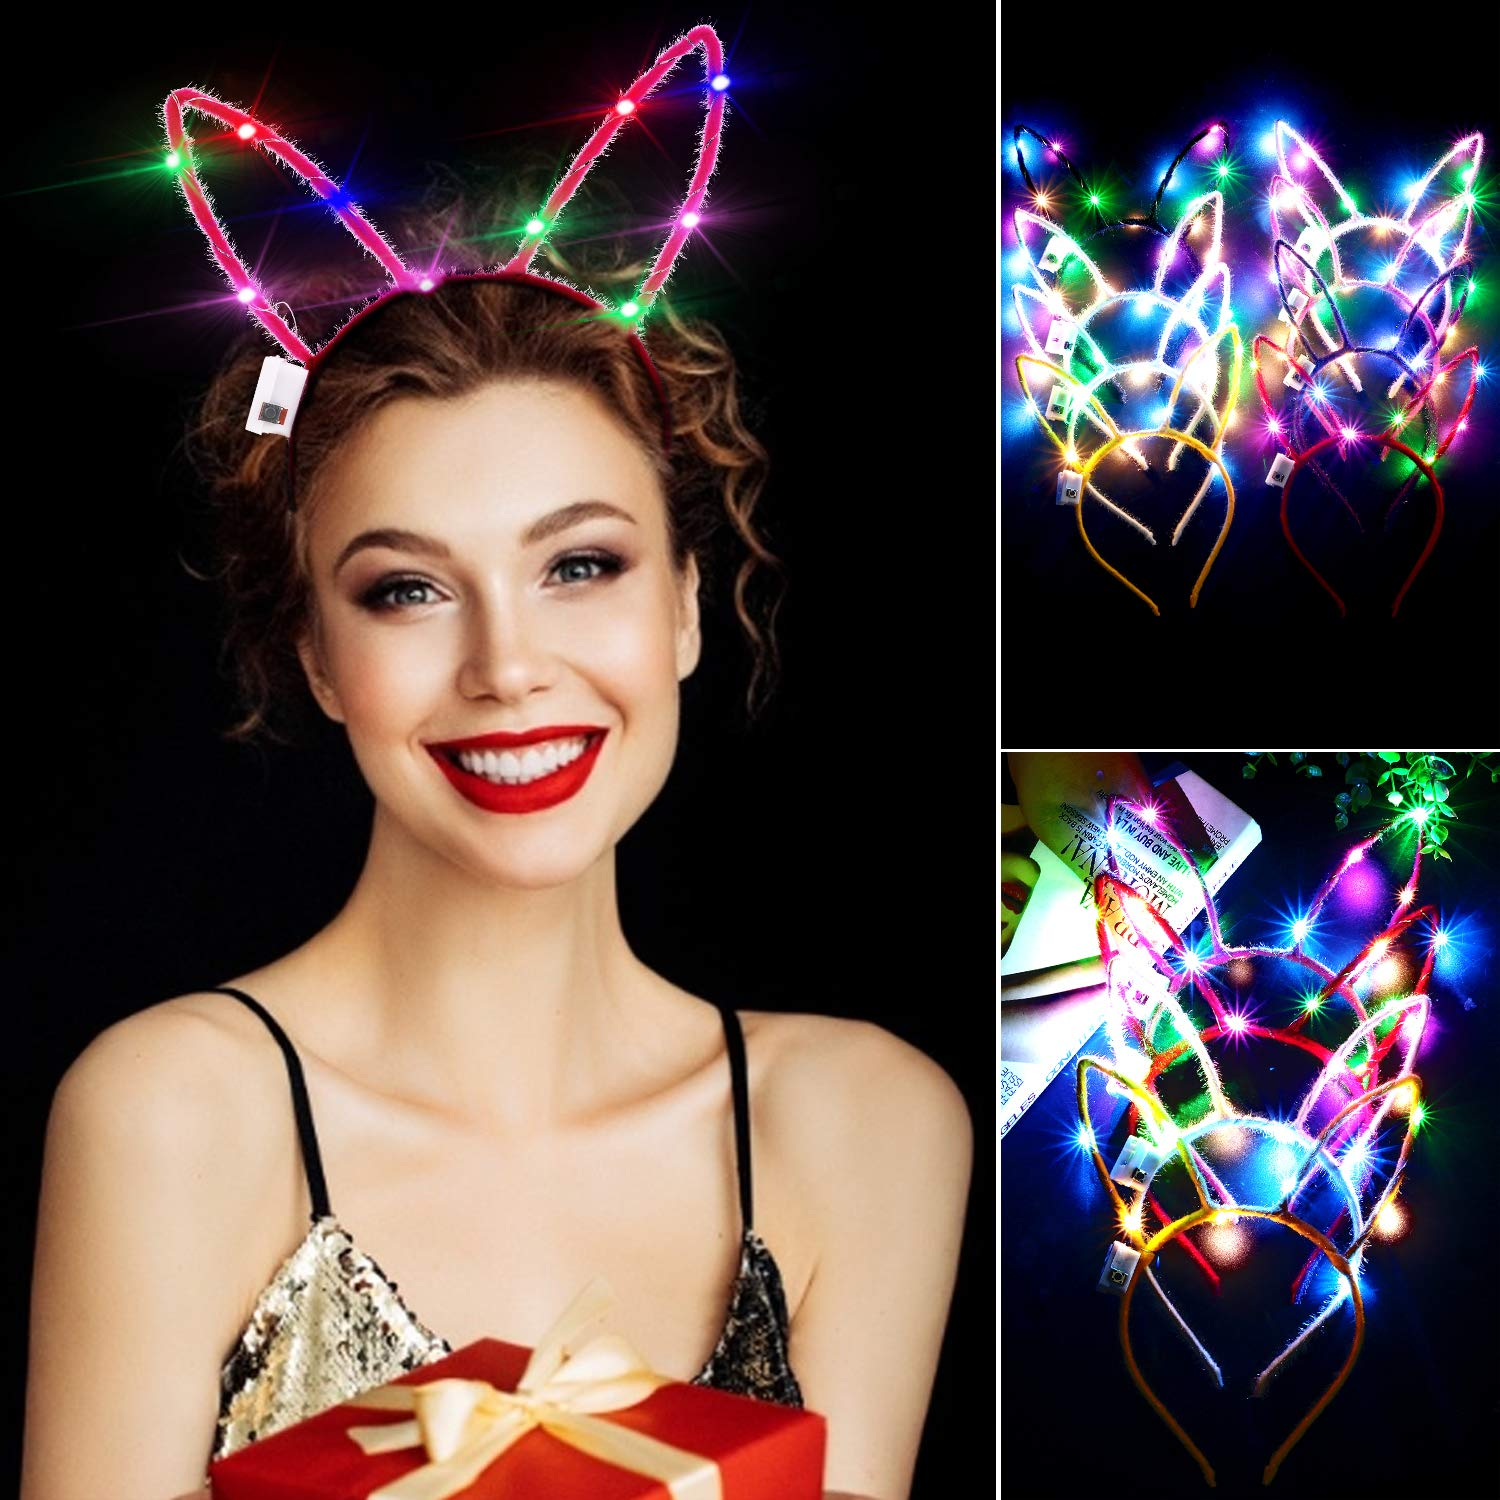 LED Rabbit Ears Headband, Aniwon 10PCS Light Up Bunny Ears Flashing Headbands Cute Hair Hoop for Kids Girls Adult Halloween Christmas Party Decorations Hair Accessories